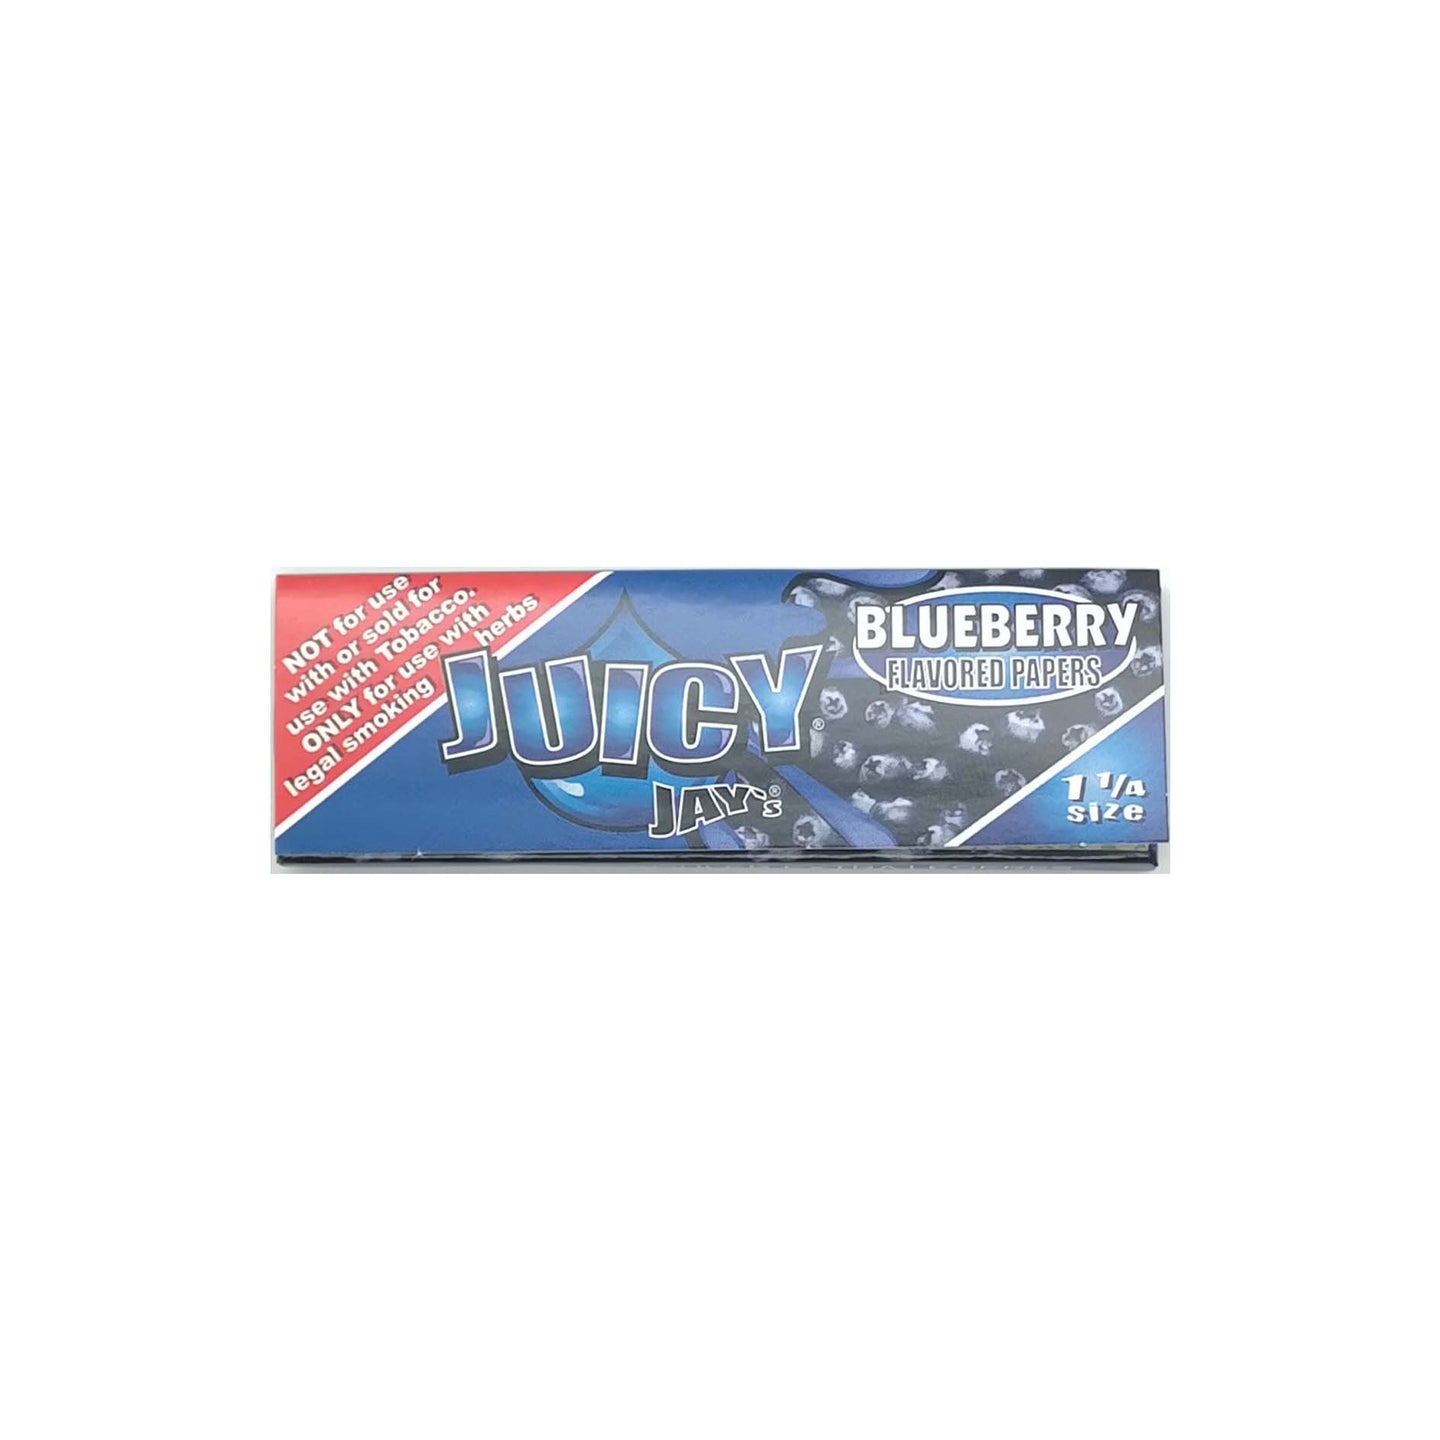 Juicy Jay's Blueberry